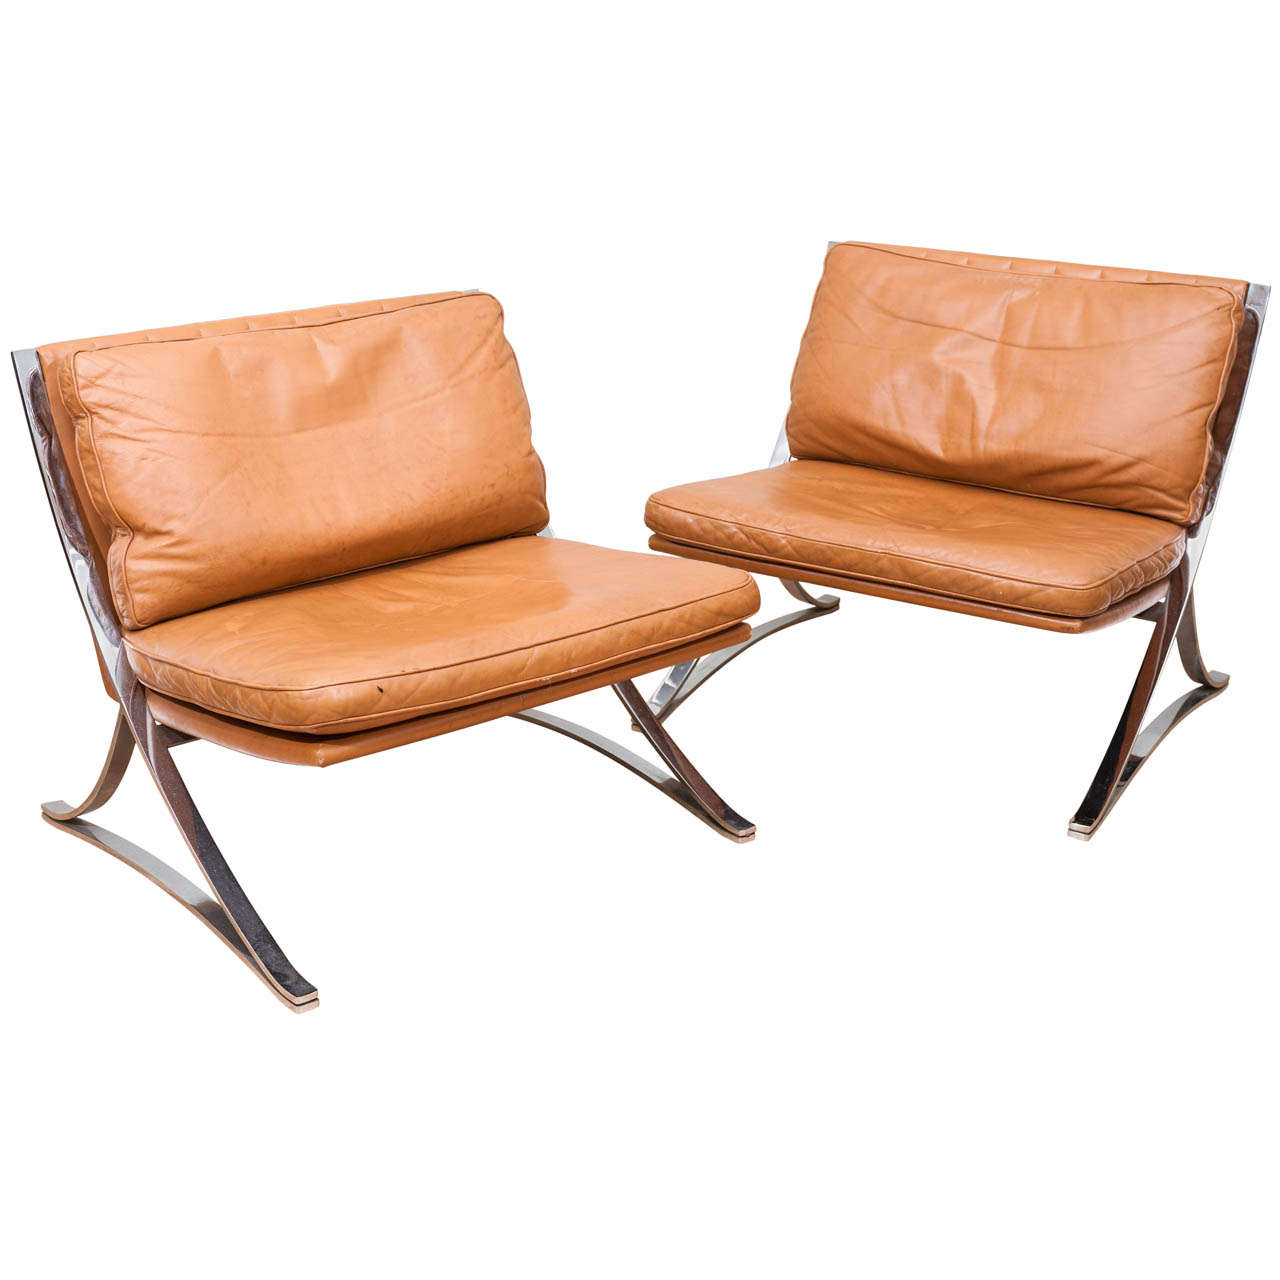 Pair of Vintage Leather Chairs In the Style of Mies van der Rohe 1